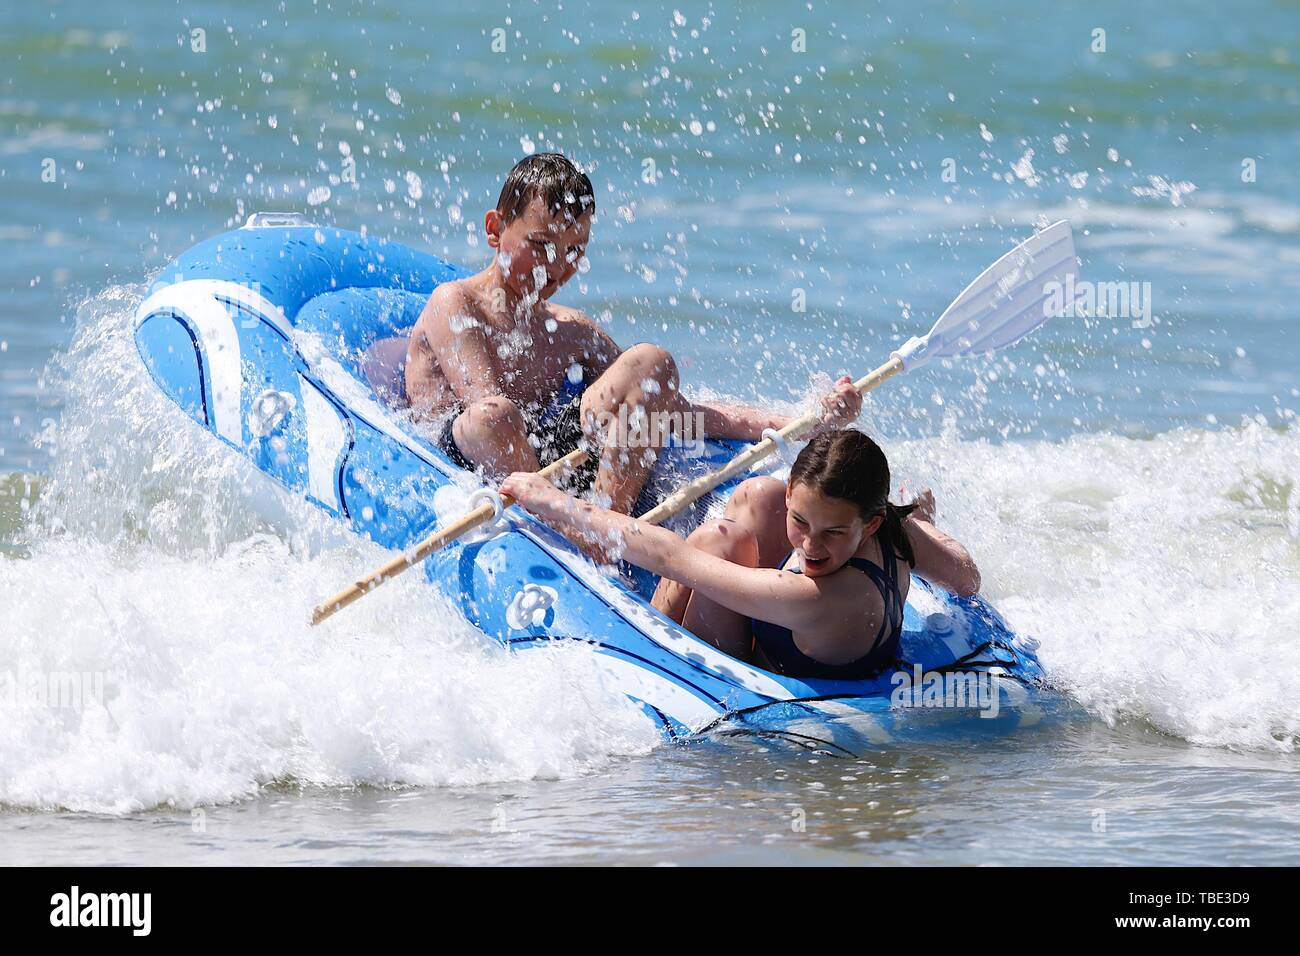 Camber, East Sussex, UK. 01 Jun, 2019. UK Weather: A beautiful sunny morning for the start of a new month as people take to the beach at Camber Sands. These youngsters enjoy themselves on a rubber dinghy splashing in the sea. © Paul Lawrenson 2019, Photo Credit: Paul Lawrenson/Alamy Live News Stock Photo